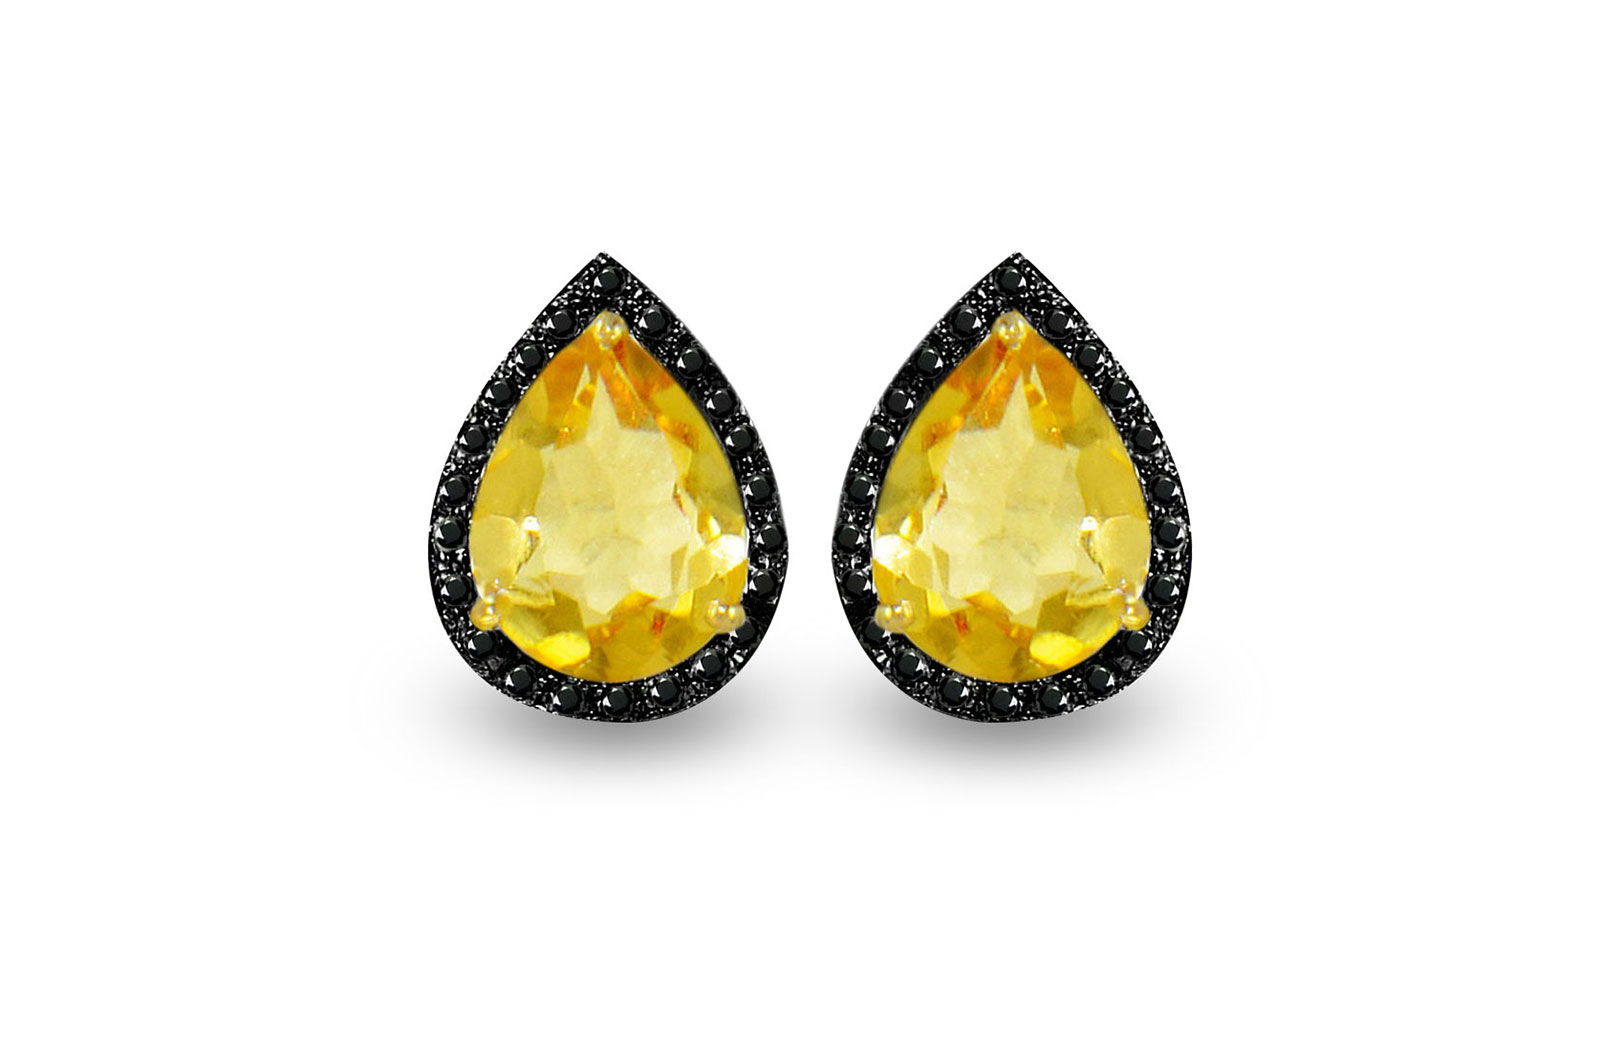 Vera Perla 18K Gold 0.24ct Black Diamonds, Citrine Earrings